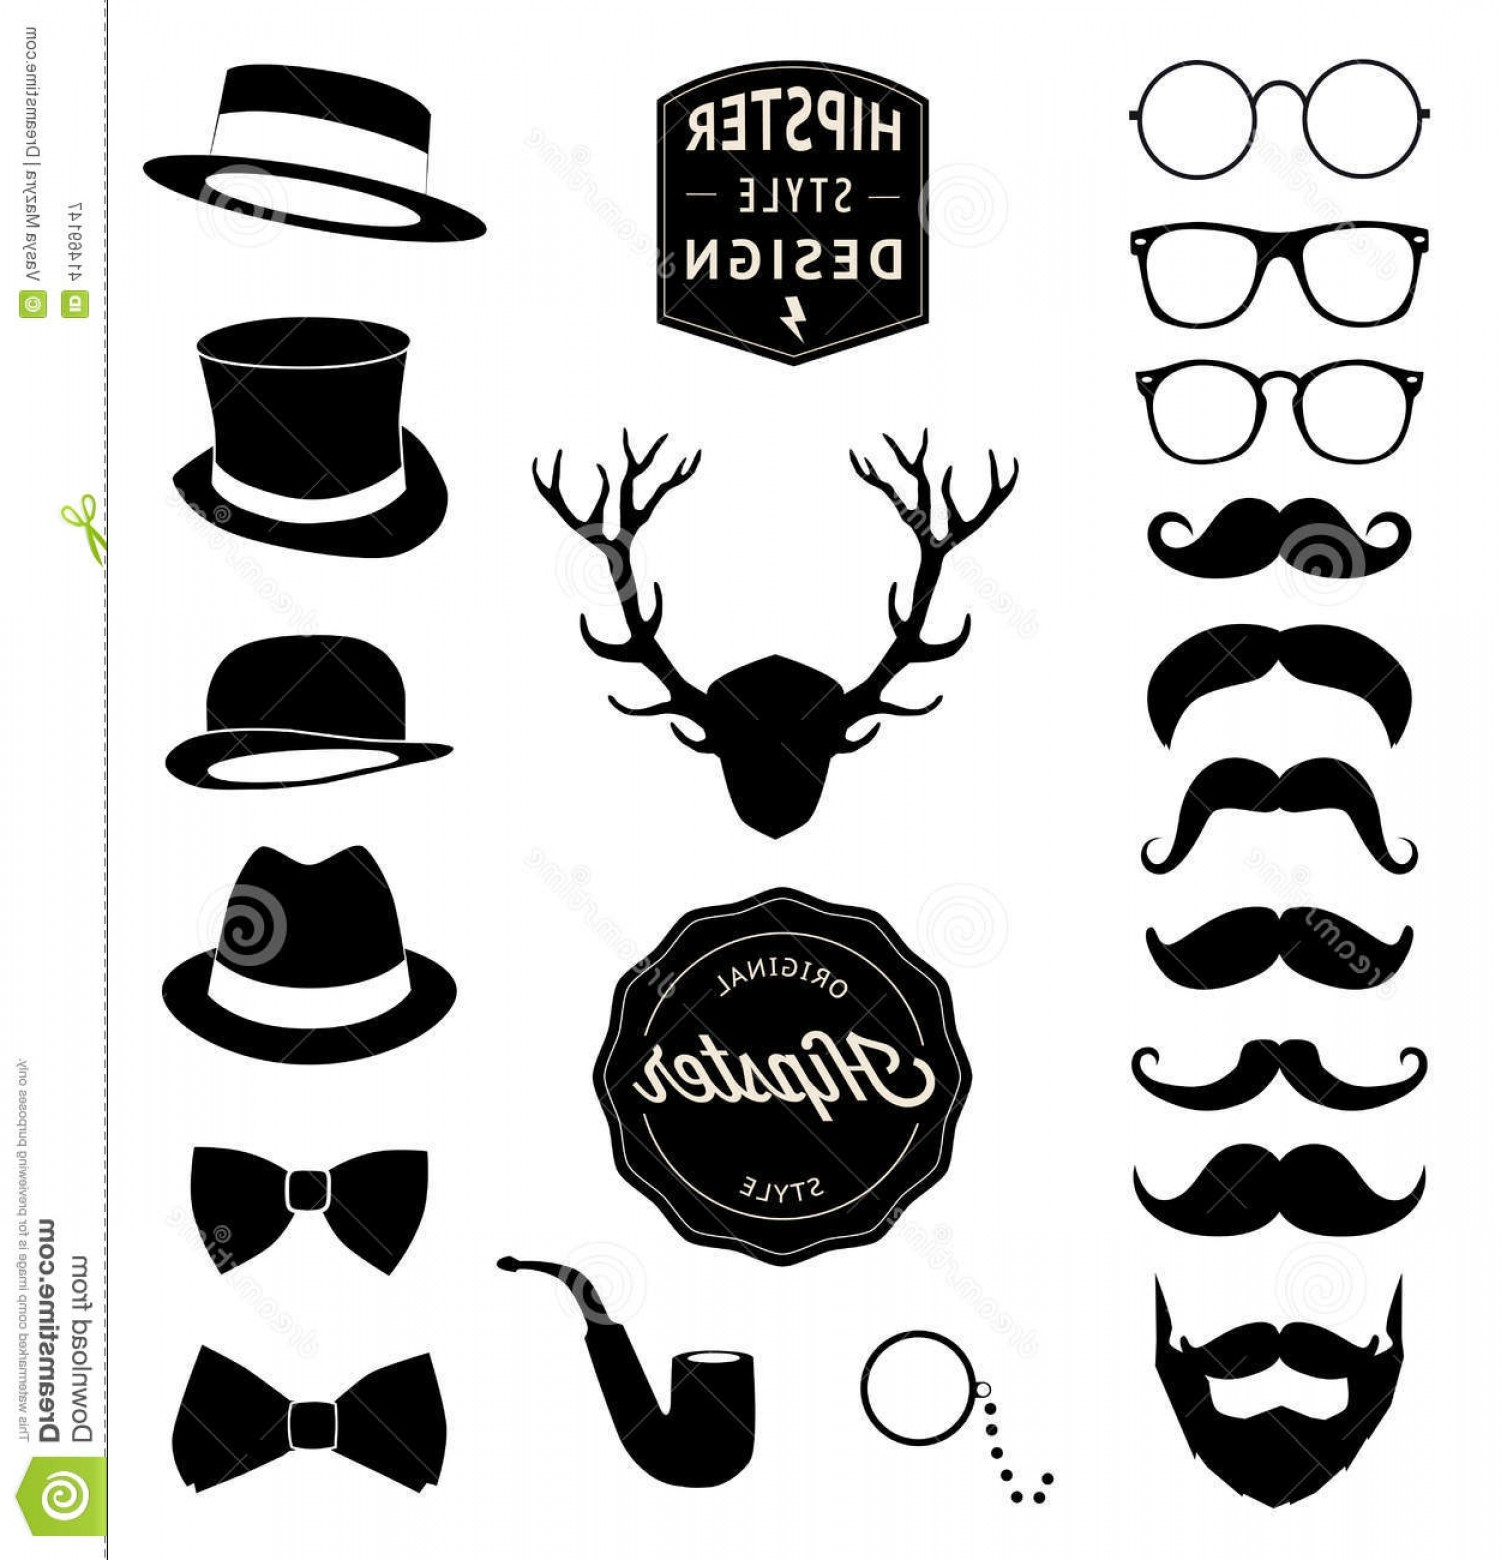 Free Vector Hipster: Stock Illustration Set Collection Vintage Fashion Elements Vector Illustration Styled Design Hipster Icons Image